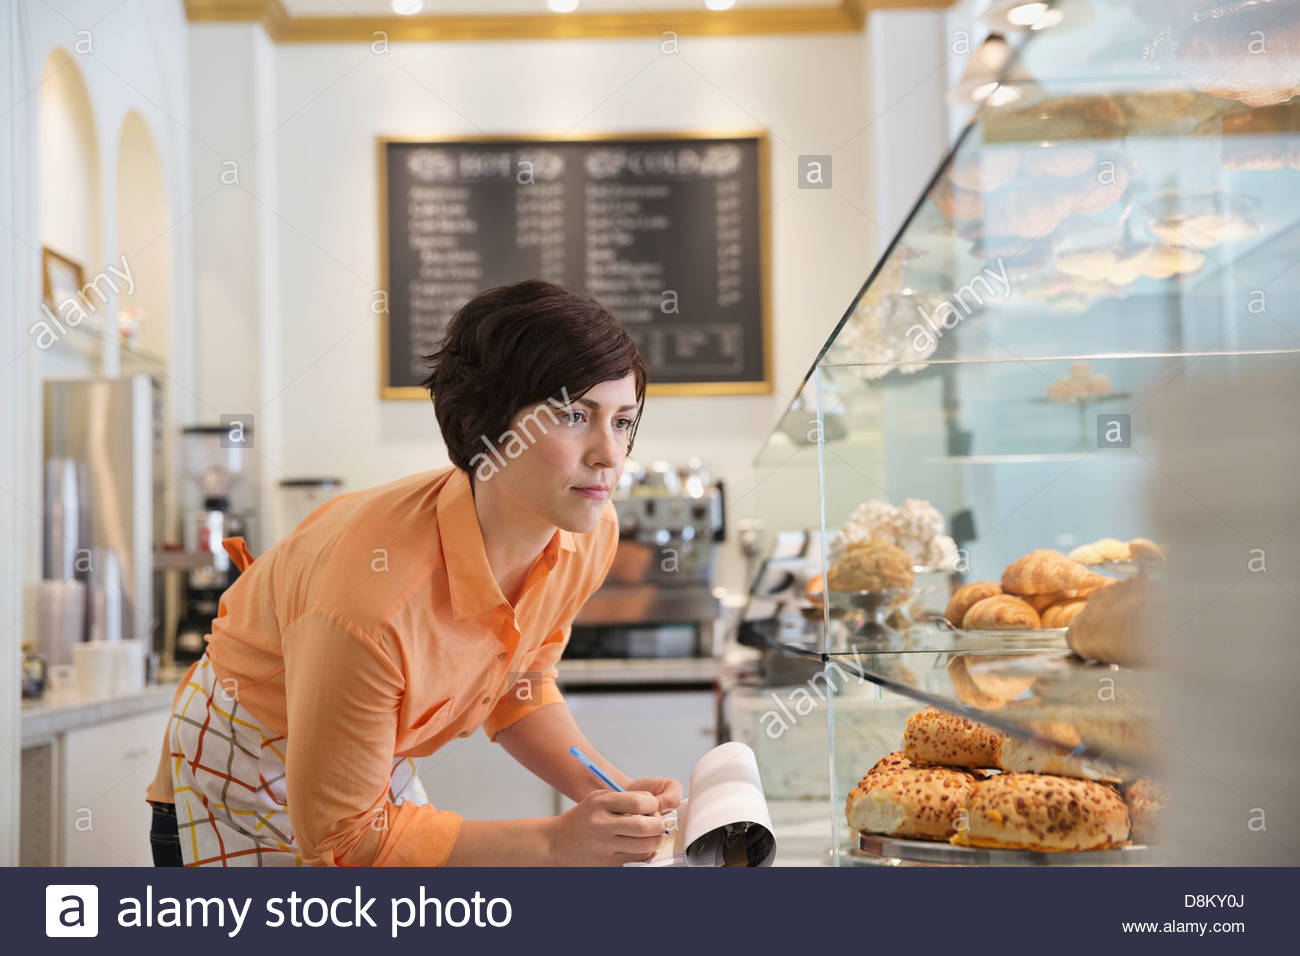 Female small business owner taking inventory in coffee shop - Stock Image